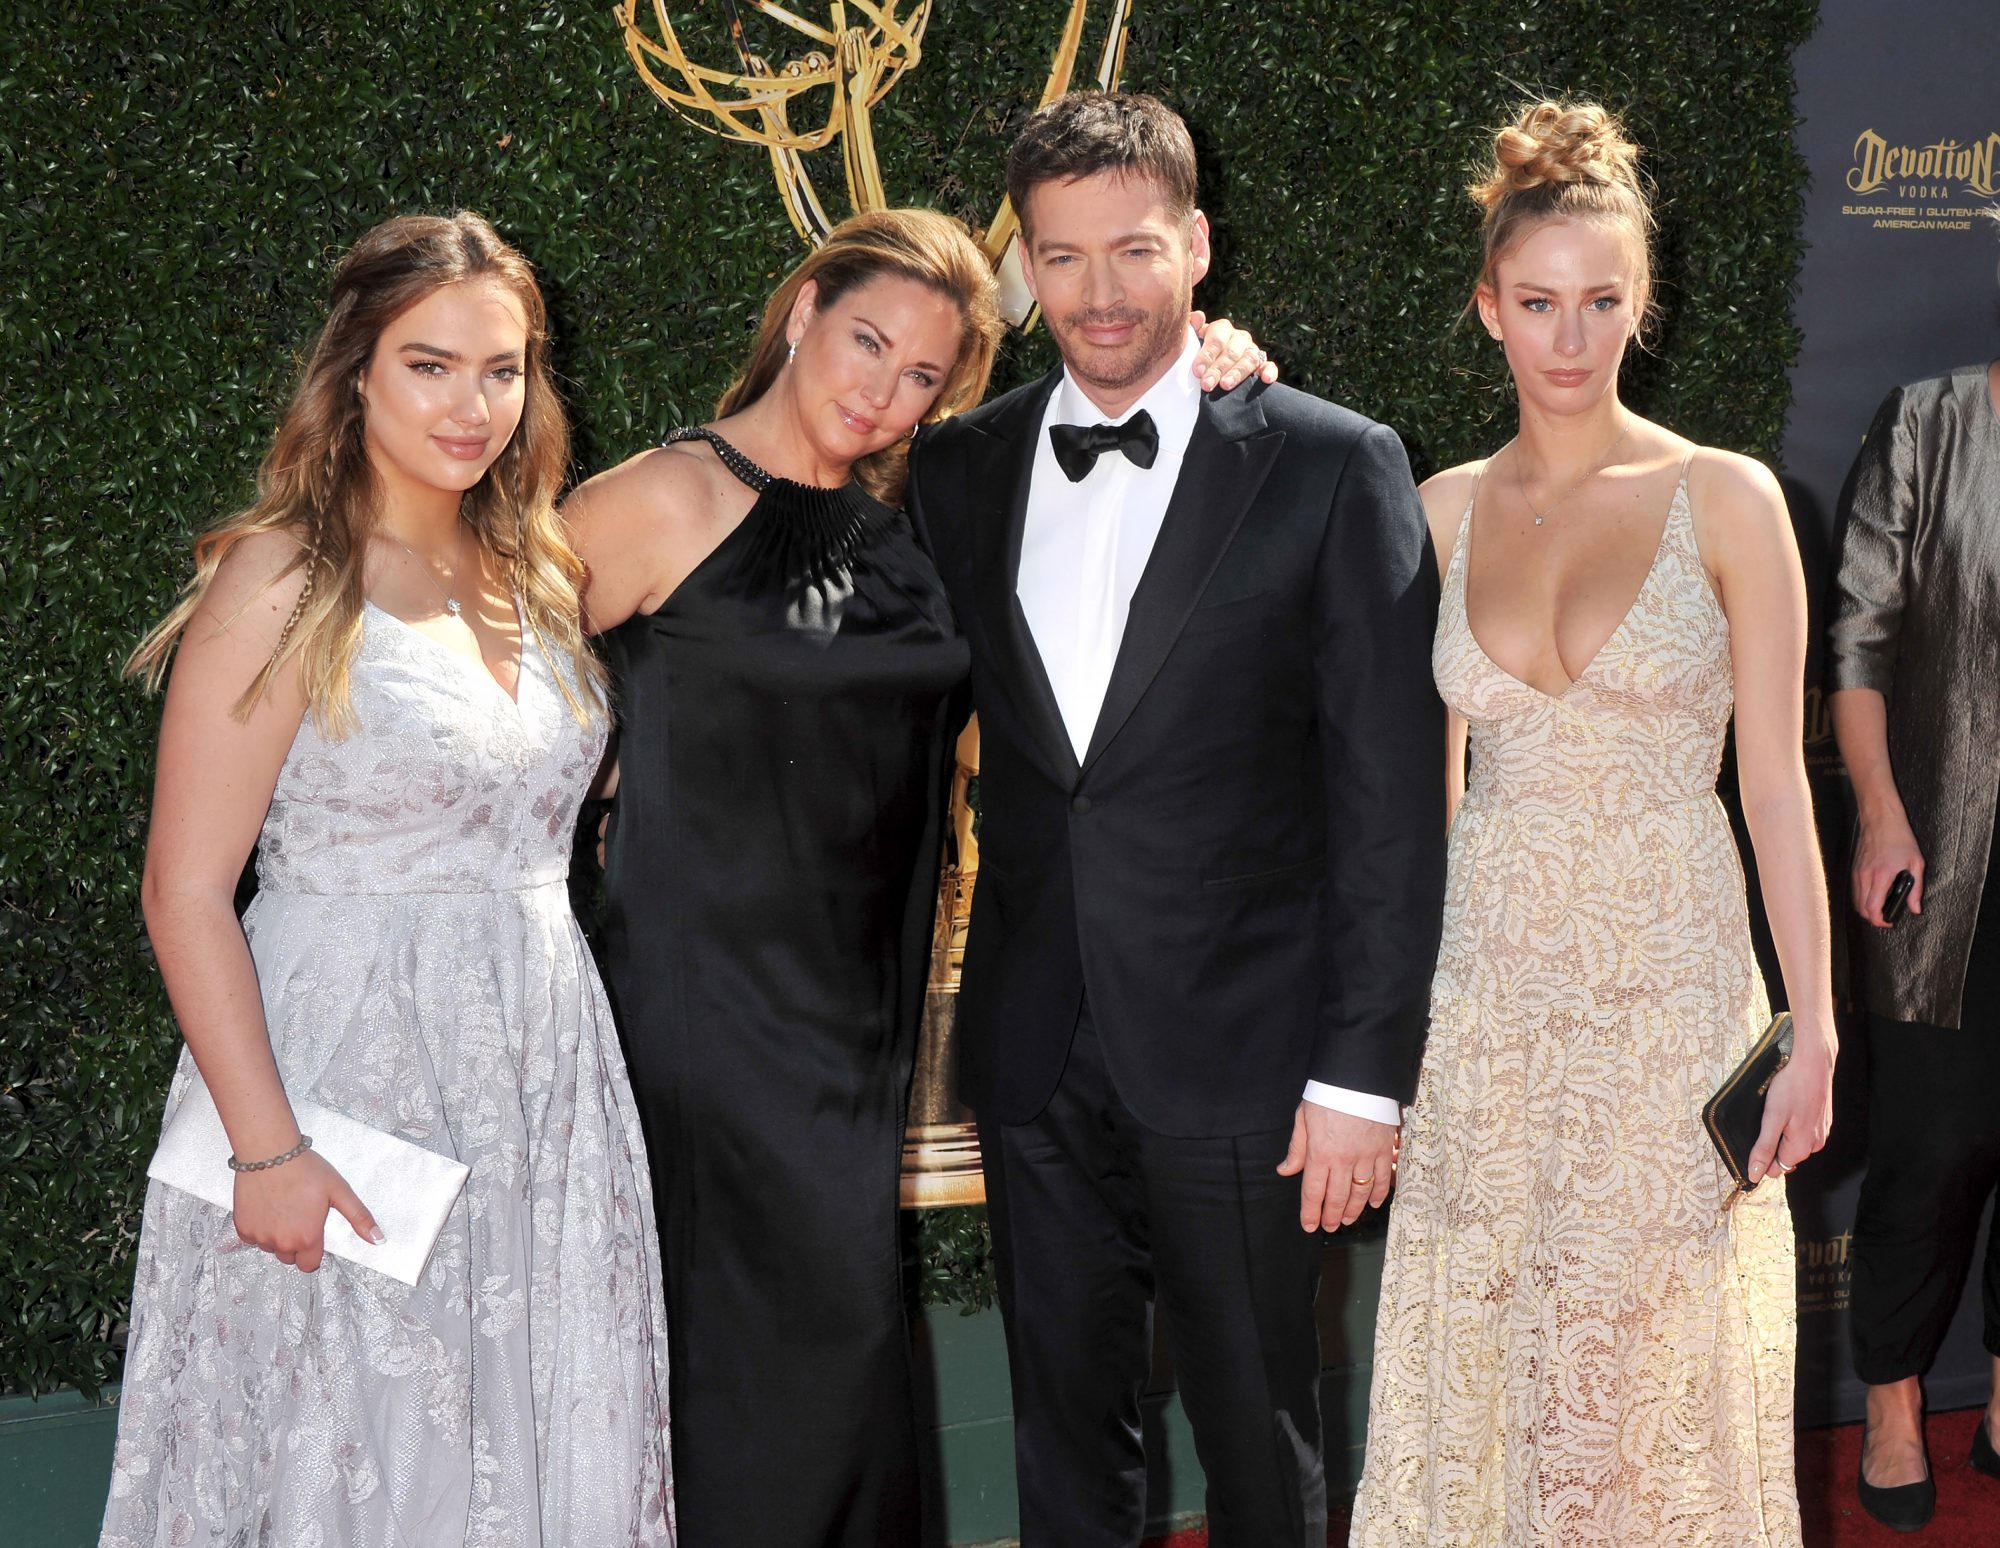 Harry Connick Jr, Wife, and Two Daughters